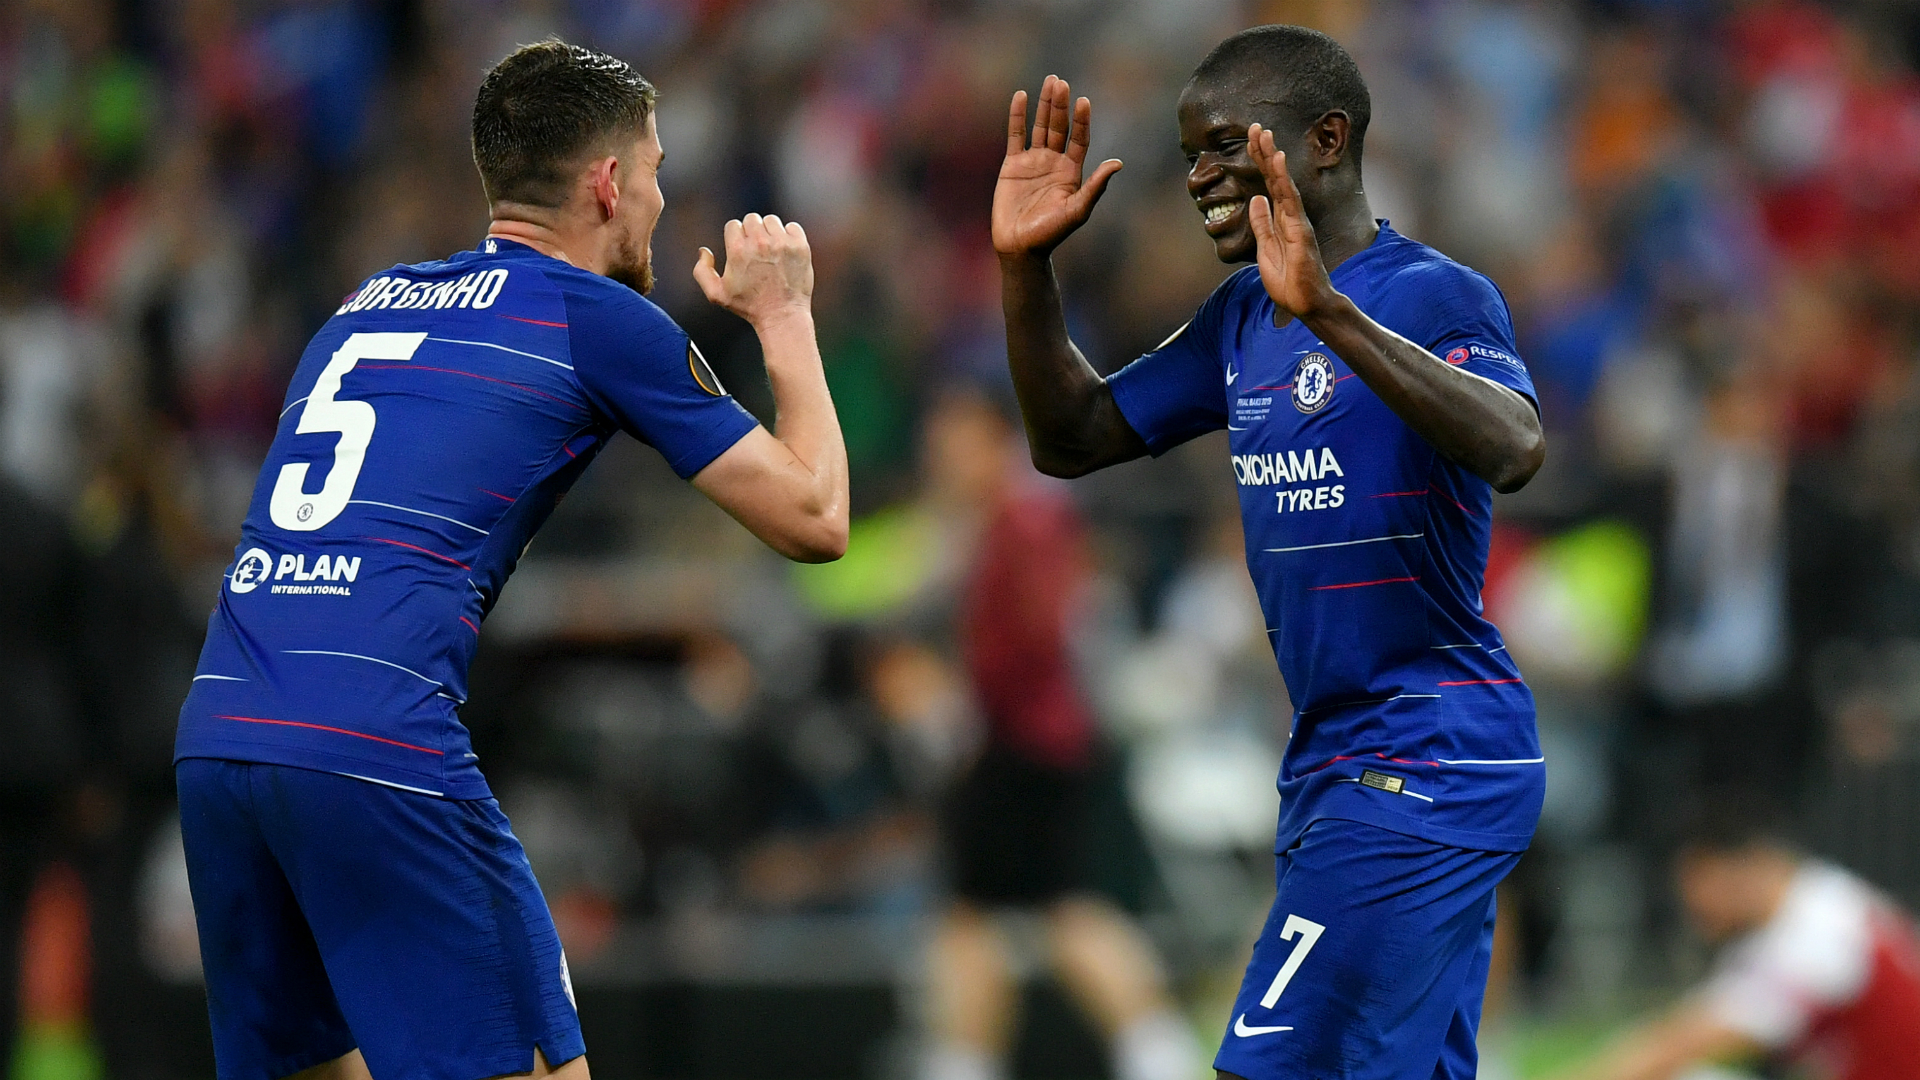 Jorginho in limbo? Kante back in position? The winners and losers of Sarri's Chelsea exit